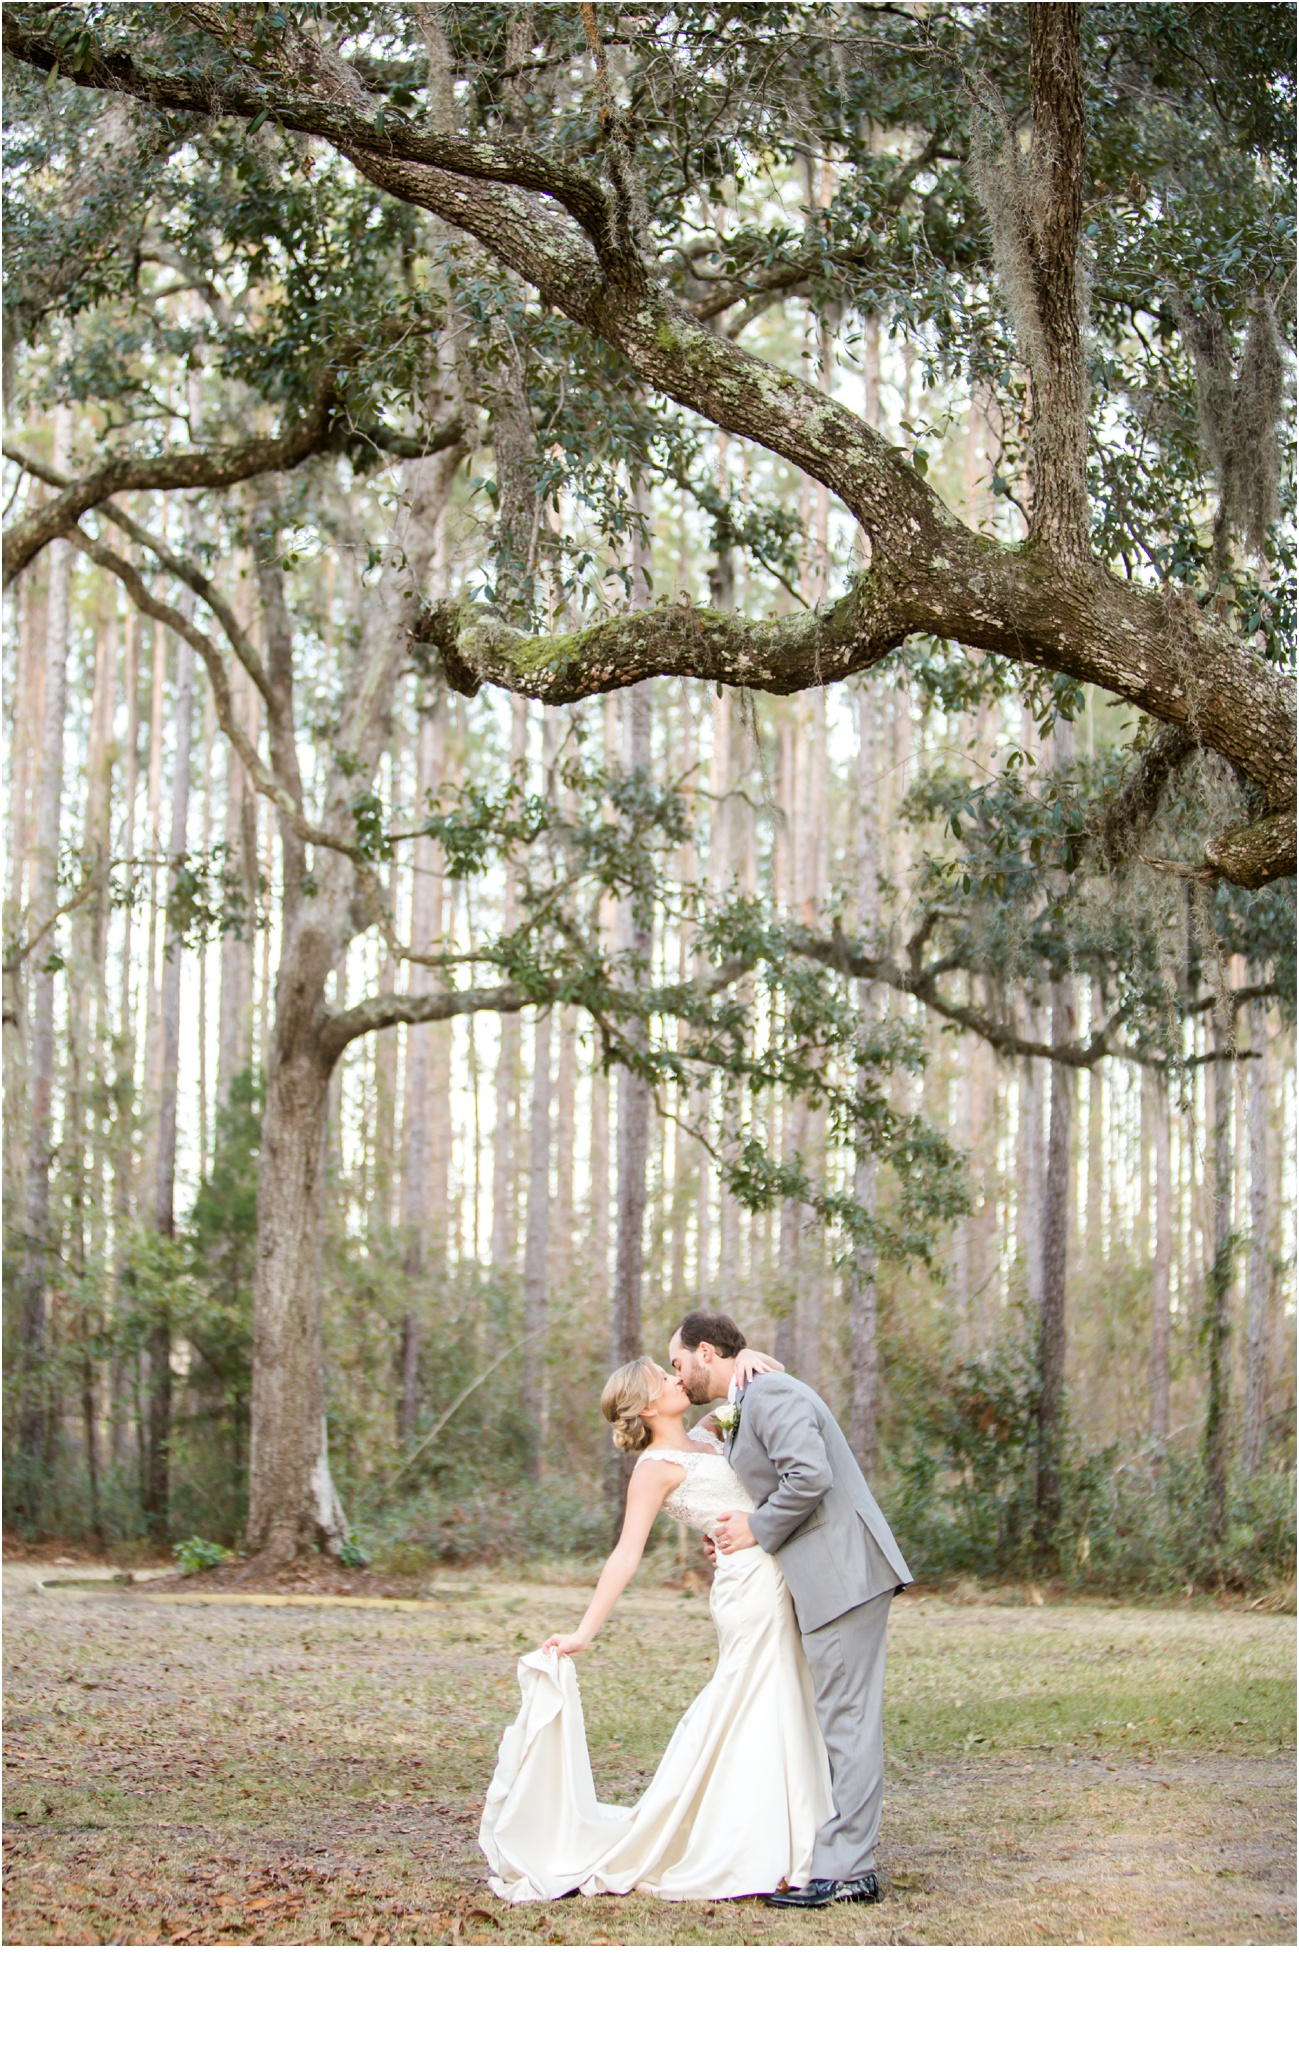 Rainey_Gregg_Photography_St._Simons_Island_Georgia_California_Wedding_Portrait_Photography_0499.jpg